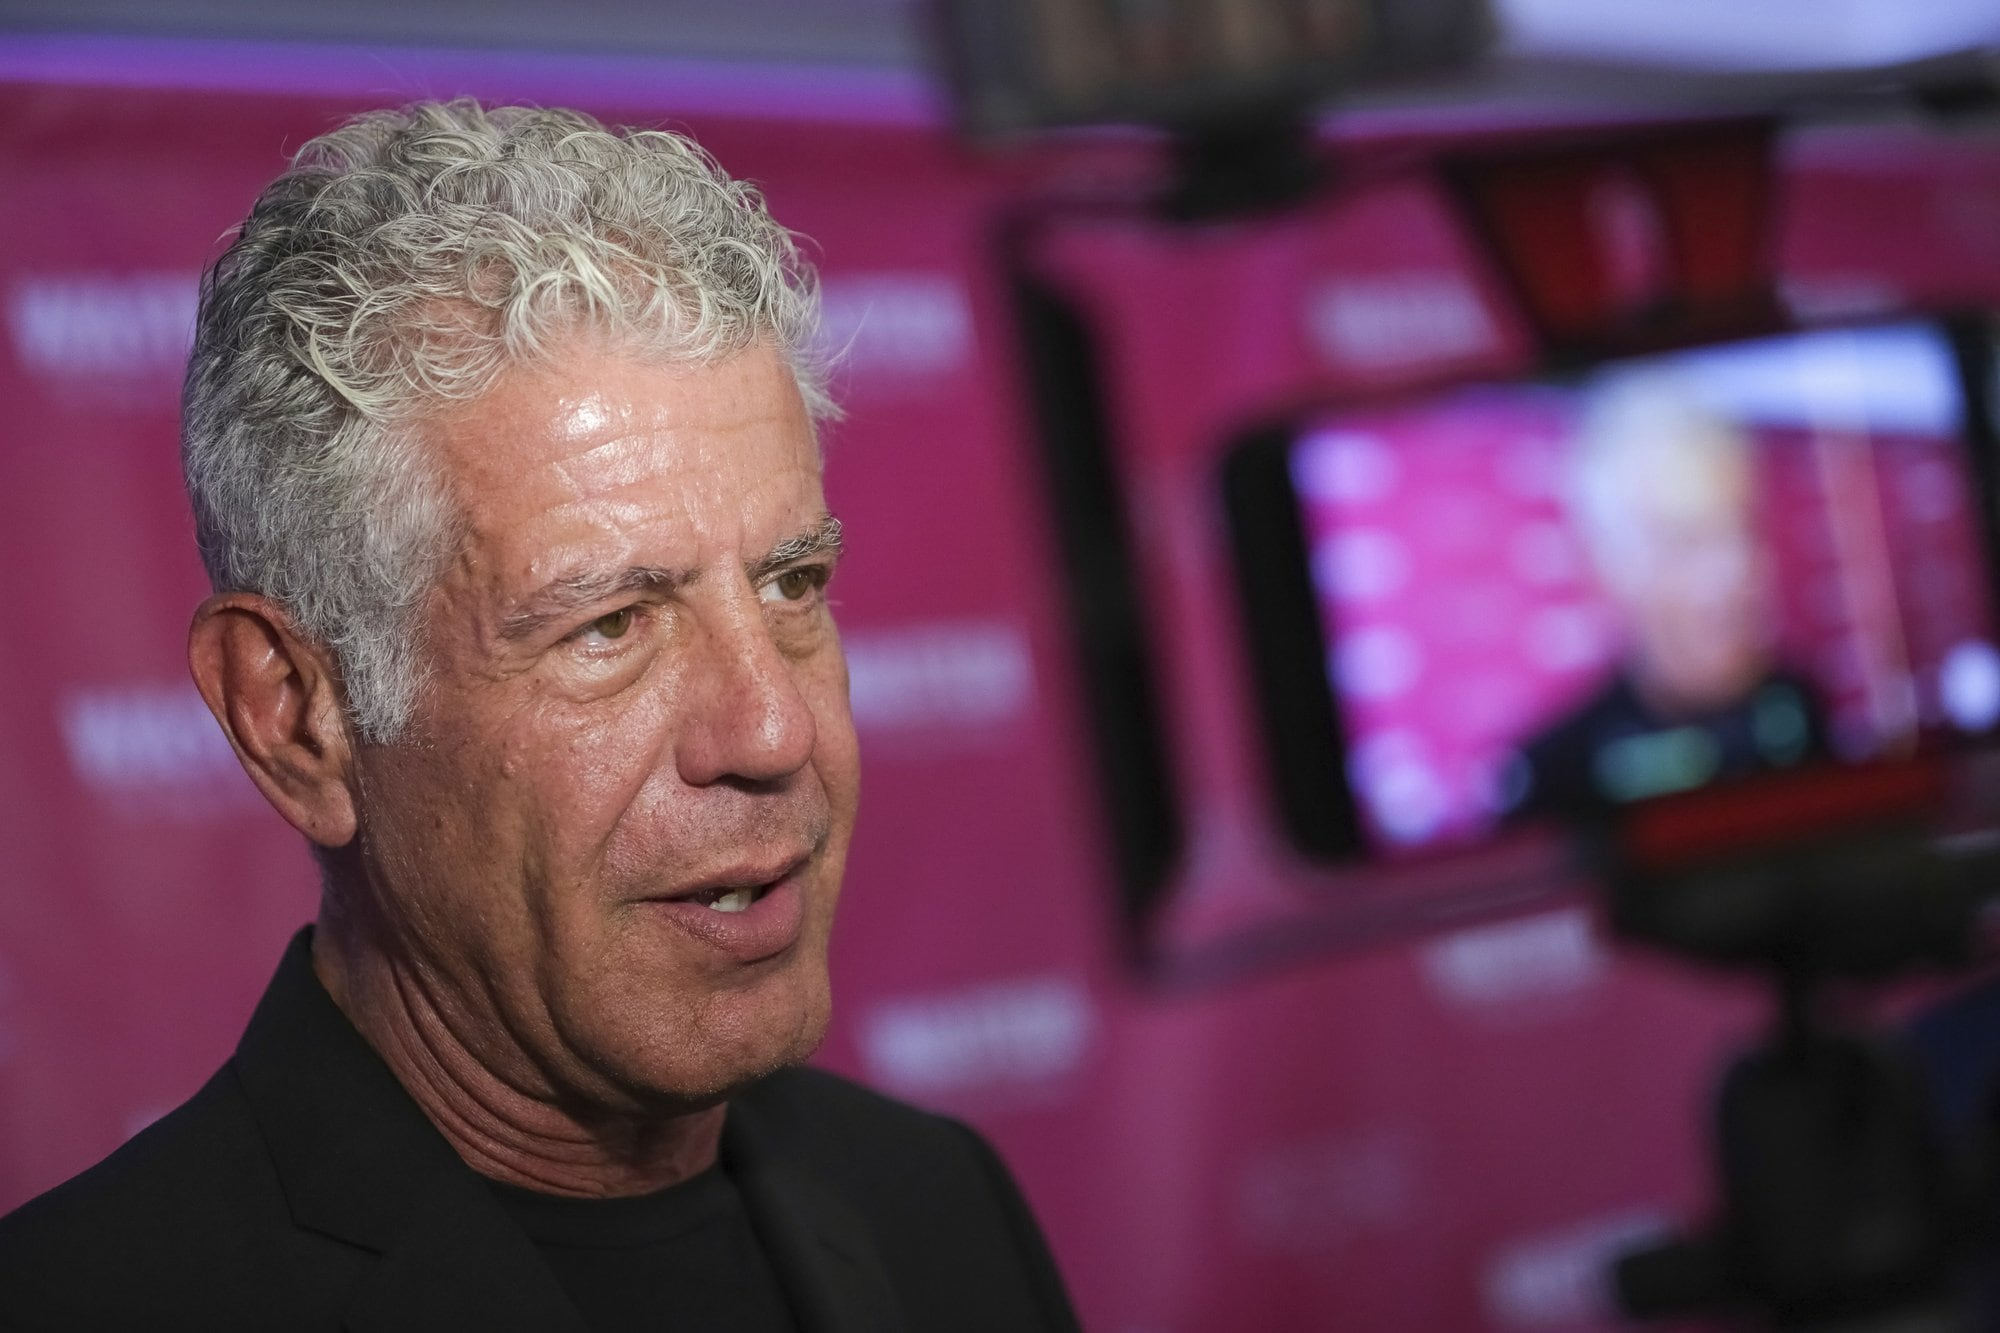 FILE - In this Oct. 5, 2017 file photo, Executive Producer and narrator chef Anthony Bourdain attends the premiere of